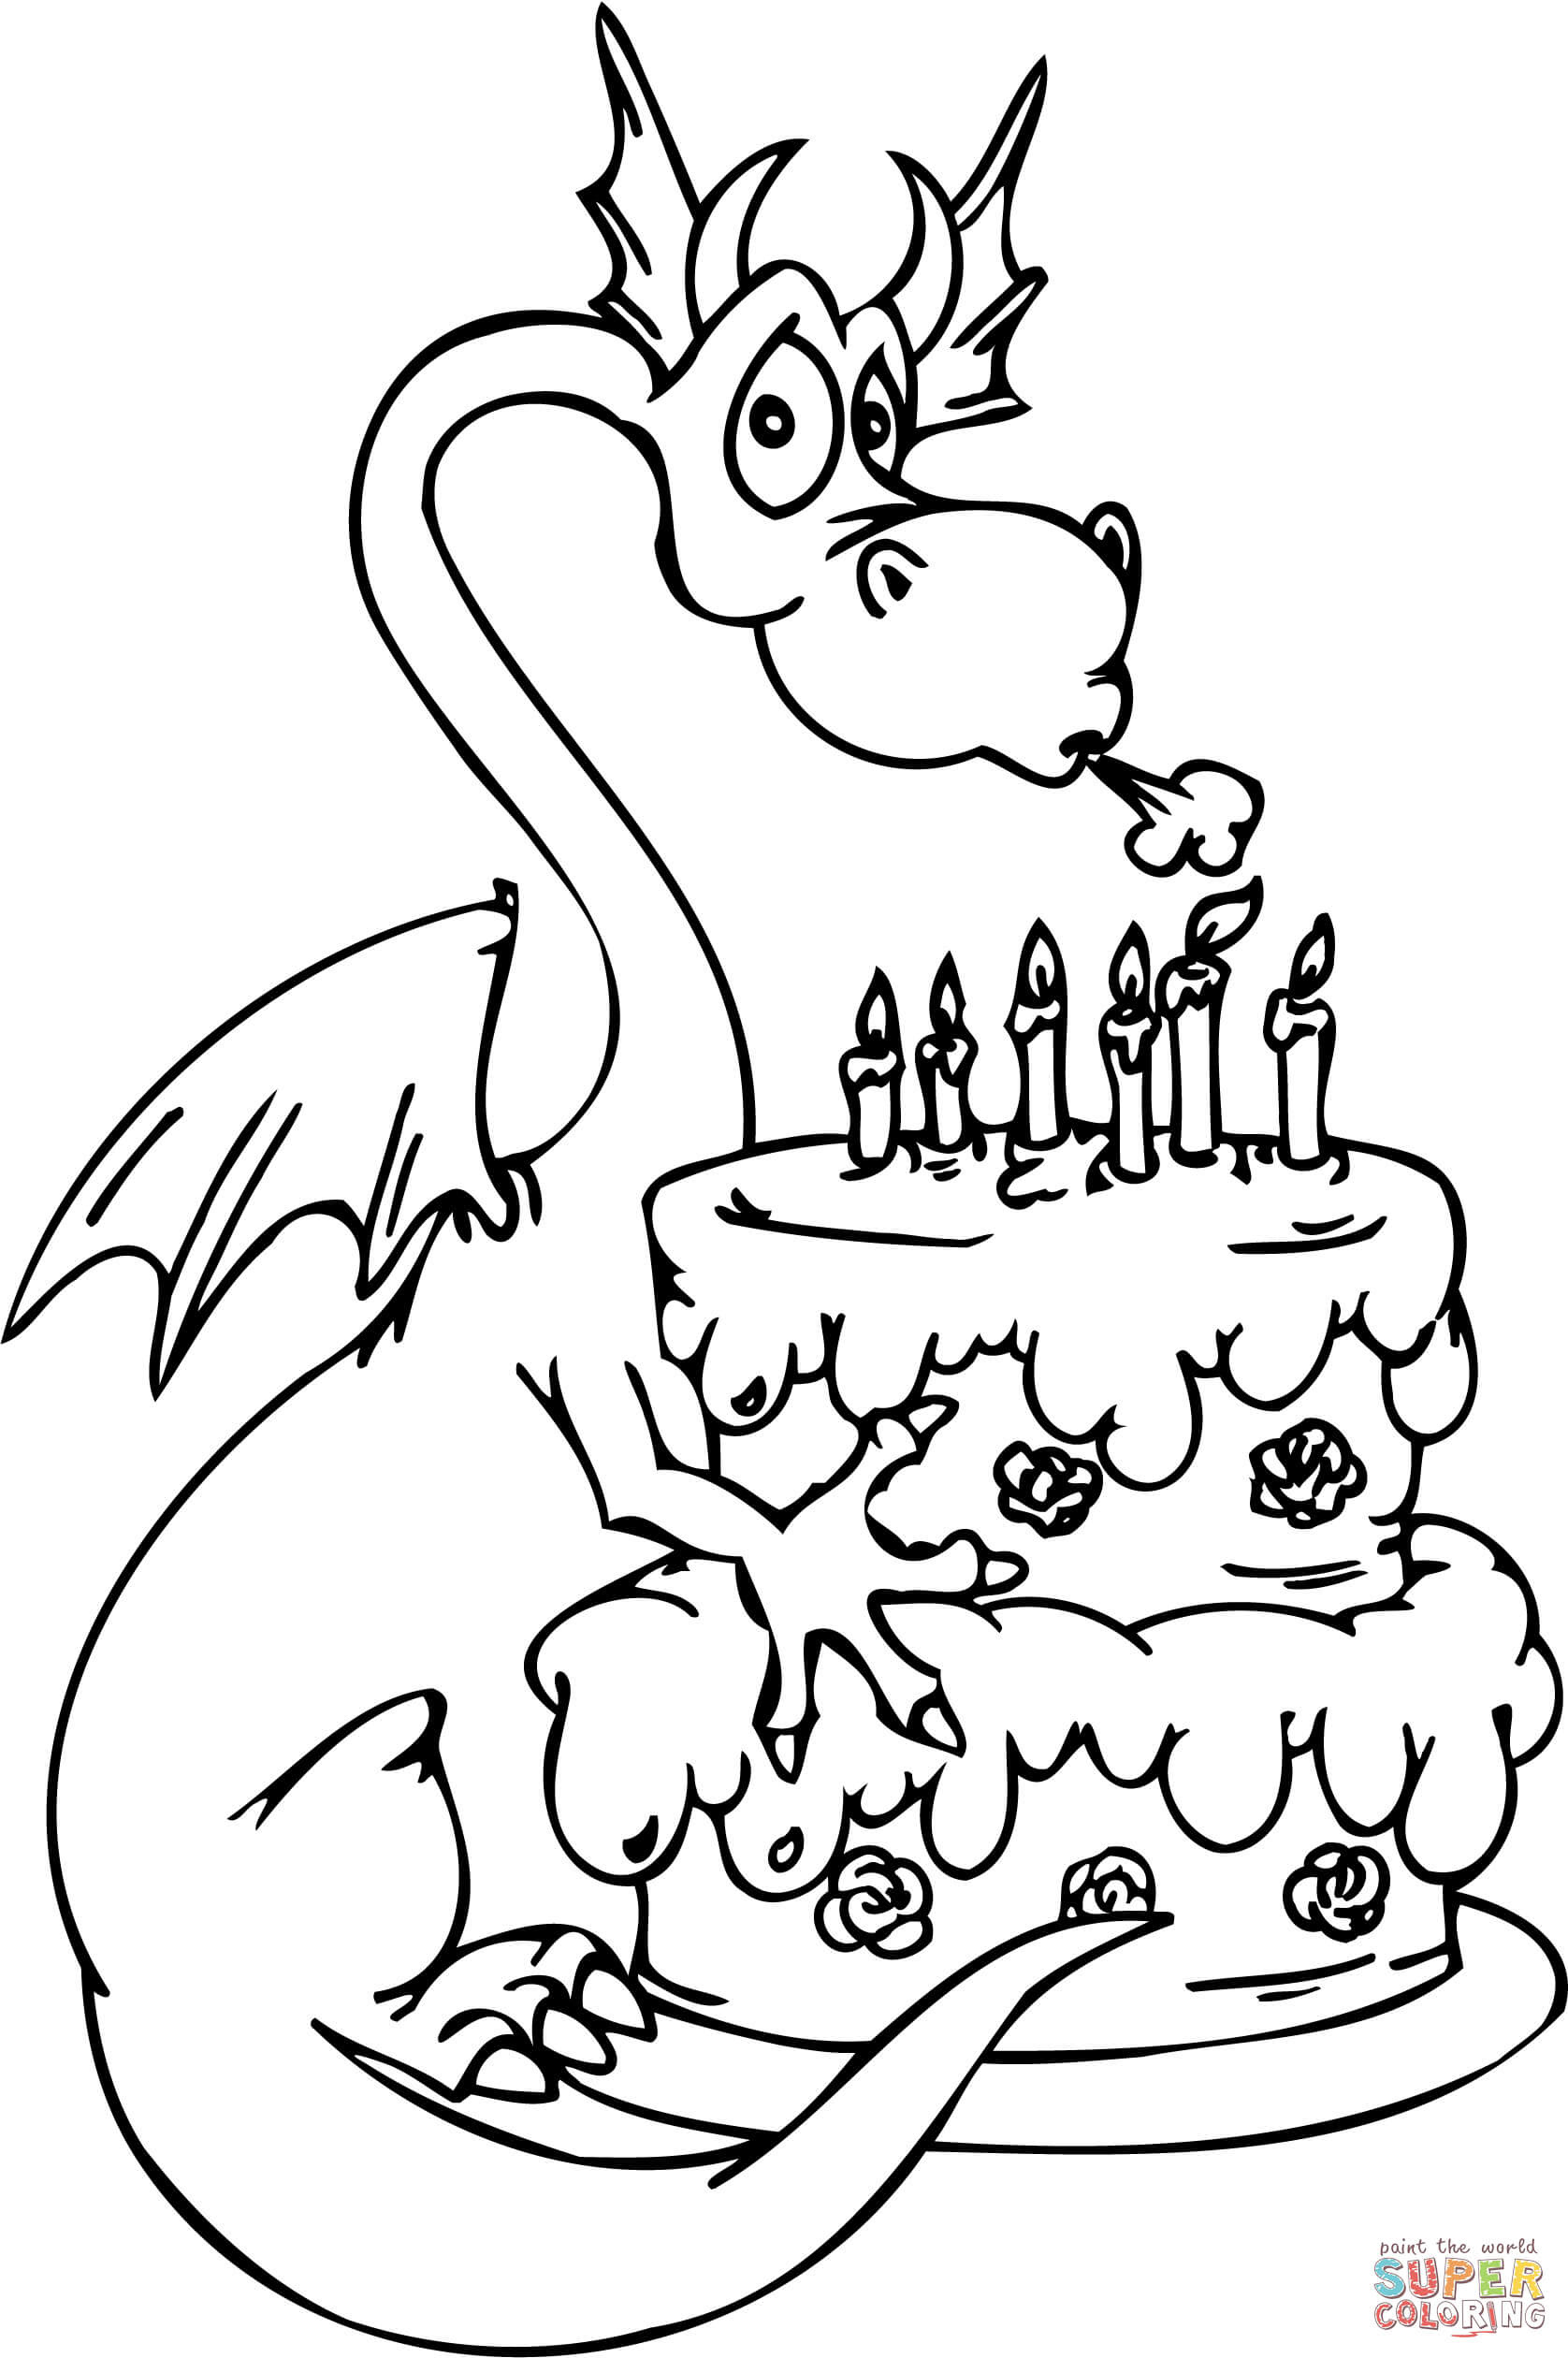 Dragon with Happy Birthday Cake coloring page | Free ...